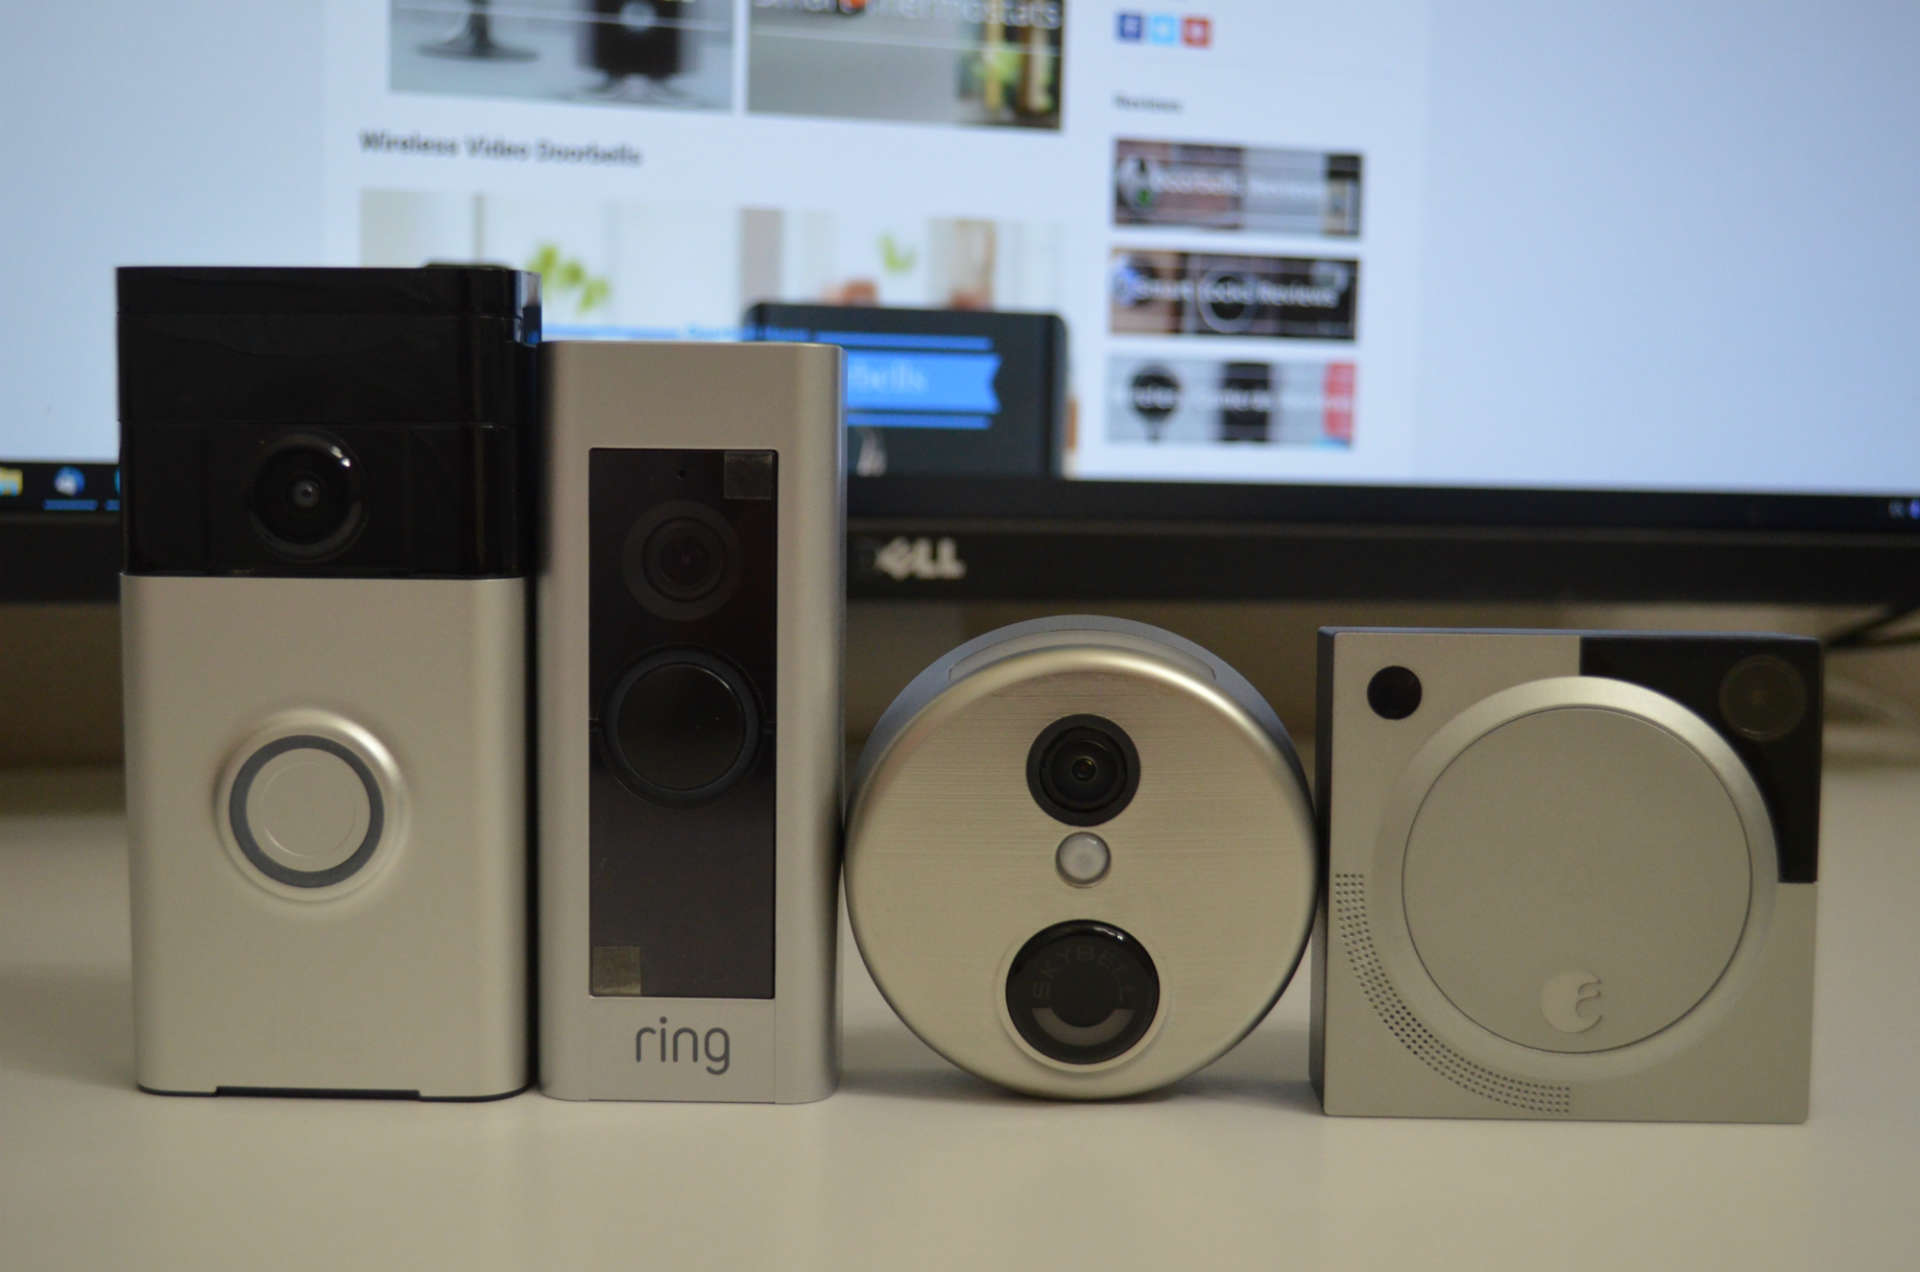 Best Video Doorbell Reviews: Skybell HD vs Ring Pro vs Ring